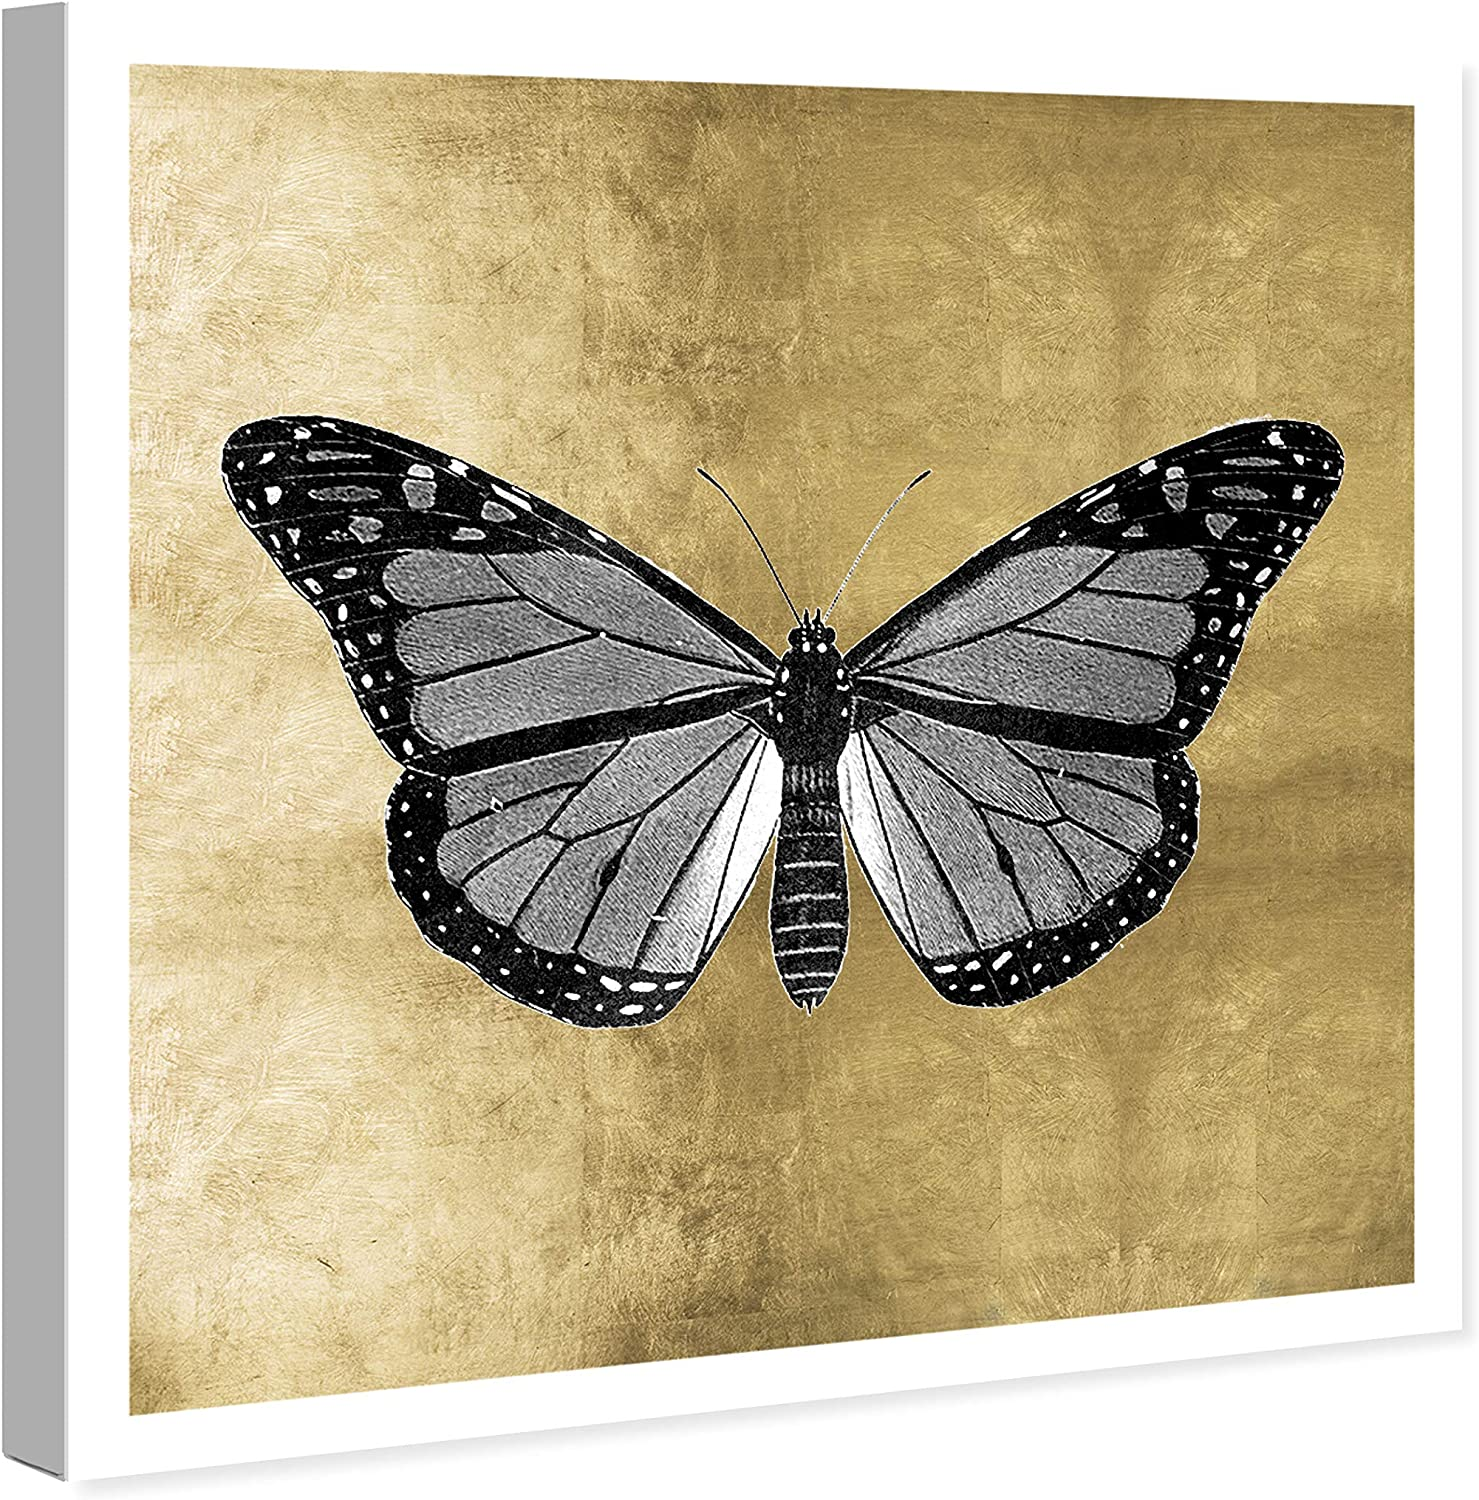 Amazon Com The Oliver Gal Artist Co Animals Wall Art Canvas Prints Butterfly Home Décor 12 X 12 Gold Black Posters Prints